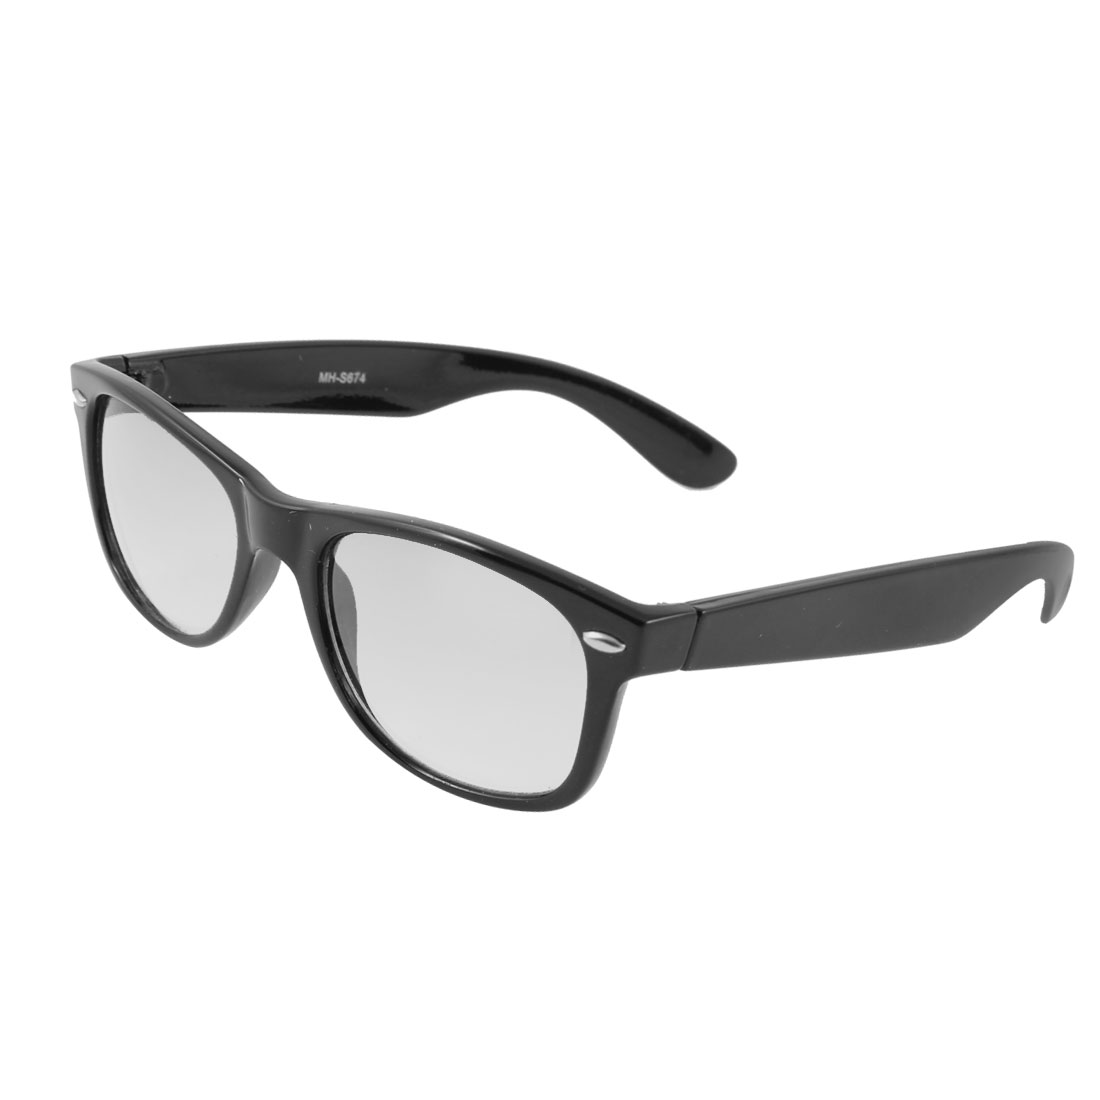 Outdoor Sports Rectangle Lens Black Full Frame Sunglasses for Lady